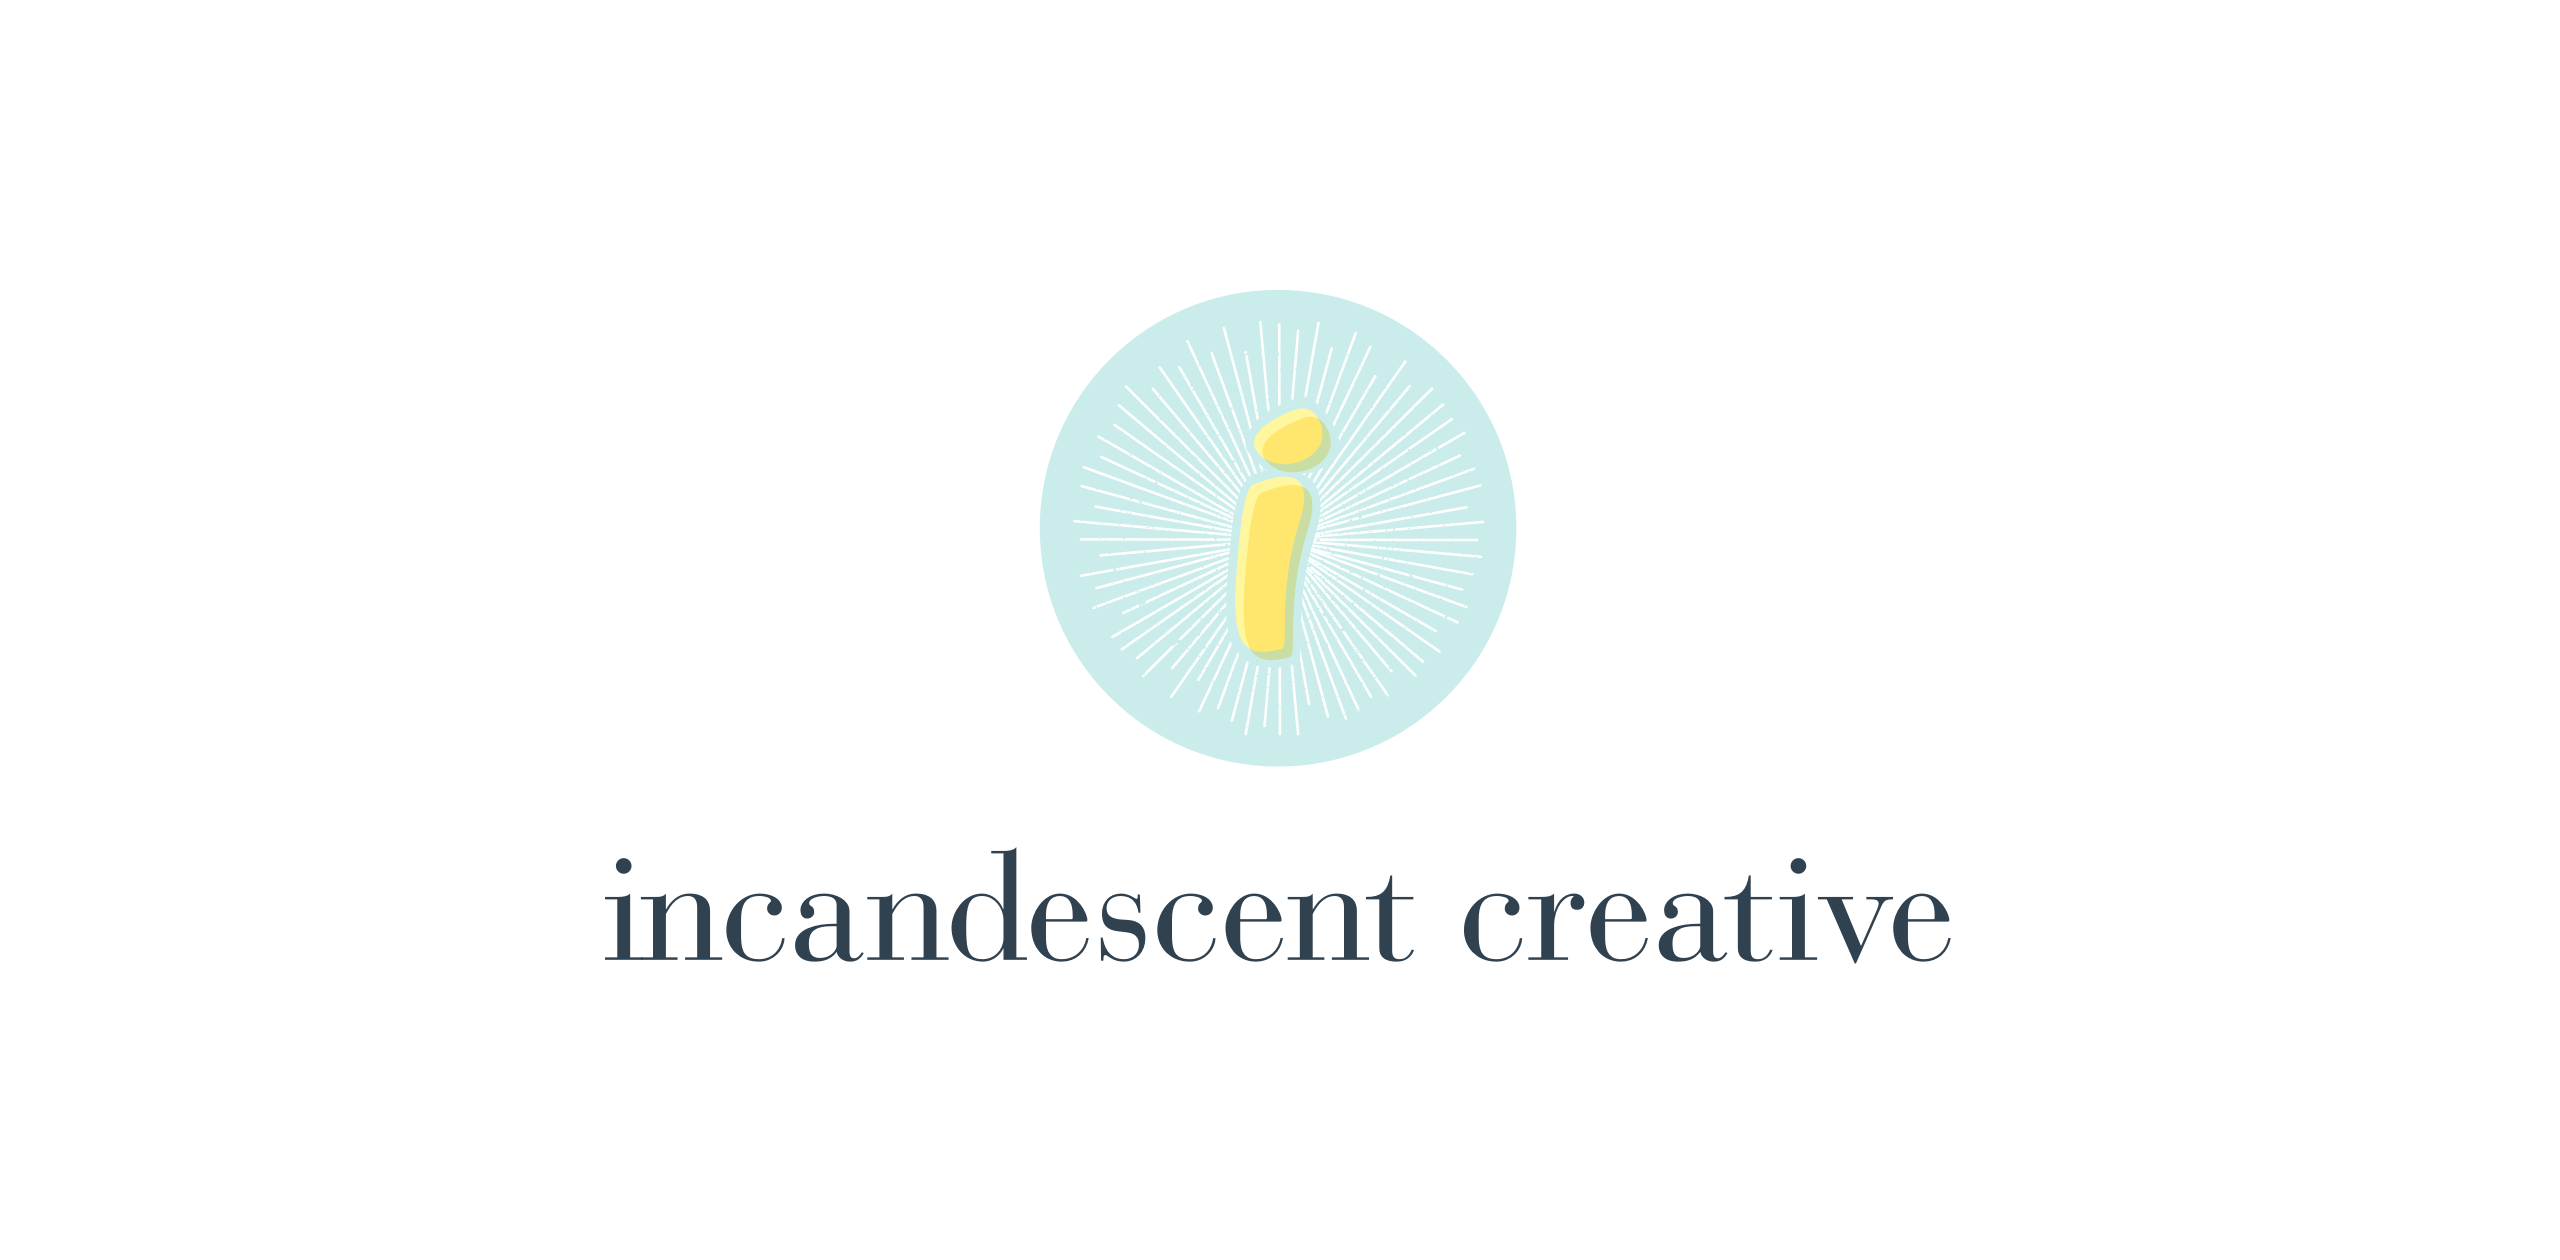 incandescent creative logo